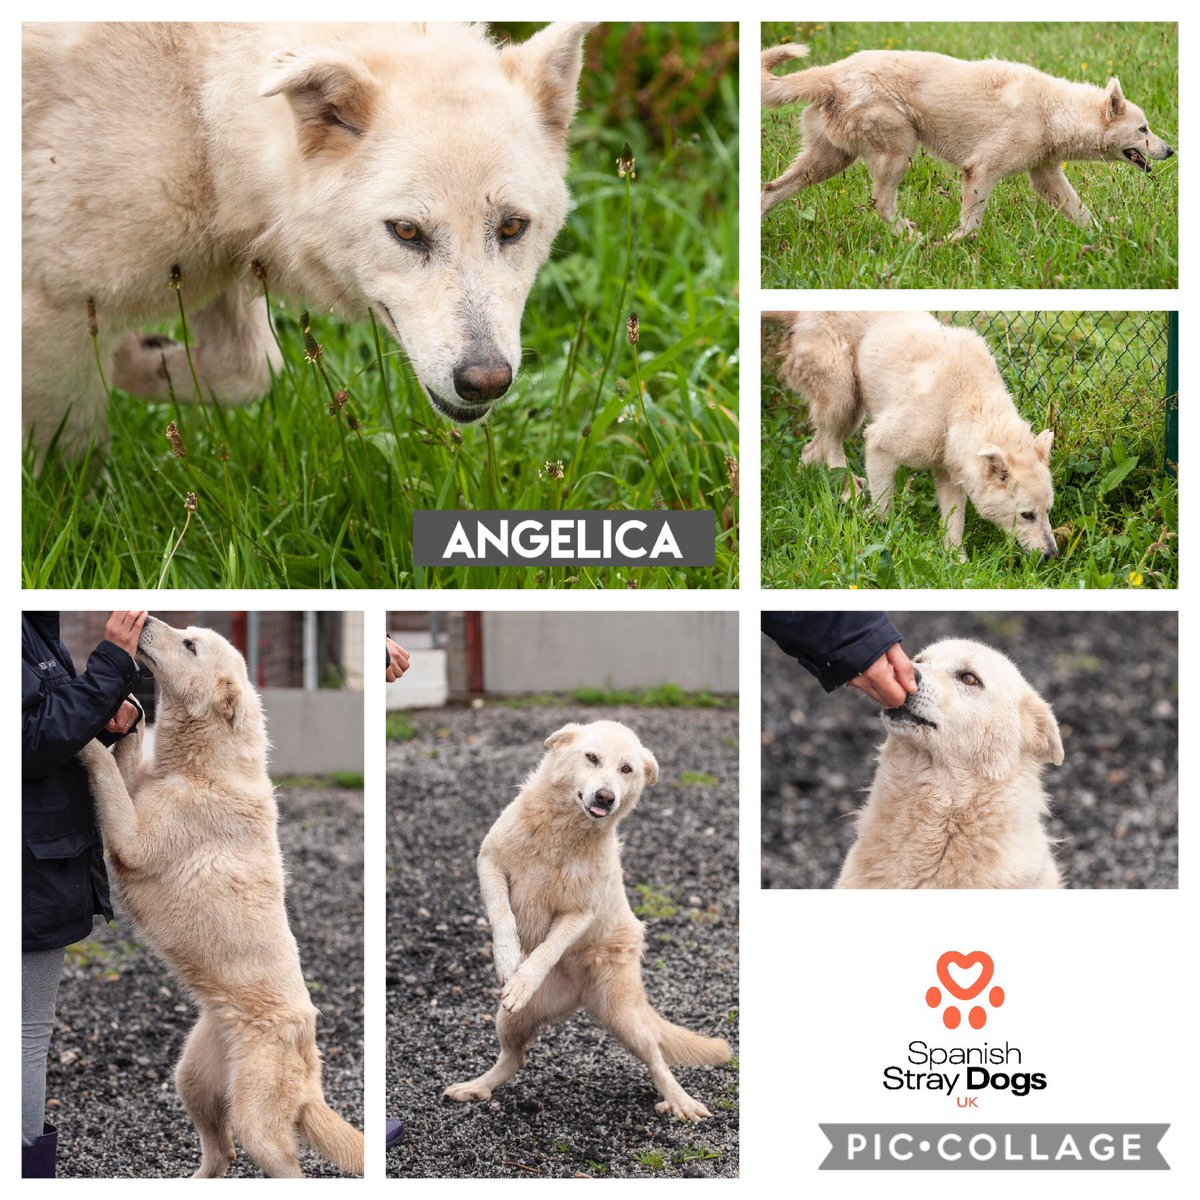 ANGELICA - ANGEL  YOUR HOME NEEDS  Angelica is one of the dogs we rescued from harsh pounds in North of Spain. She hurt her leg jumping & was very sick, we couldn't leave her, we took her into our care.  Adoptions@spanishstraydogs.org   http:// spanishstraydogs.org.uk/dog/angelica/       #AdoptDontShop<br>http://pic.twitter.com/DPzuZrRs68